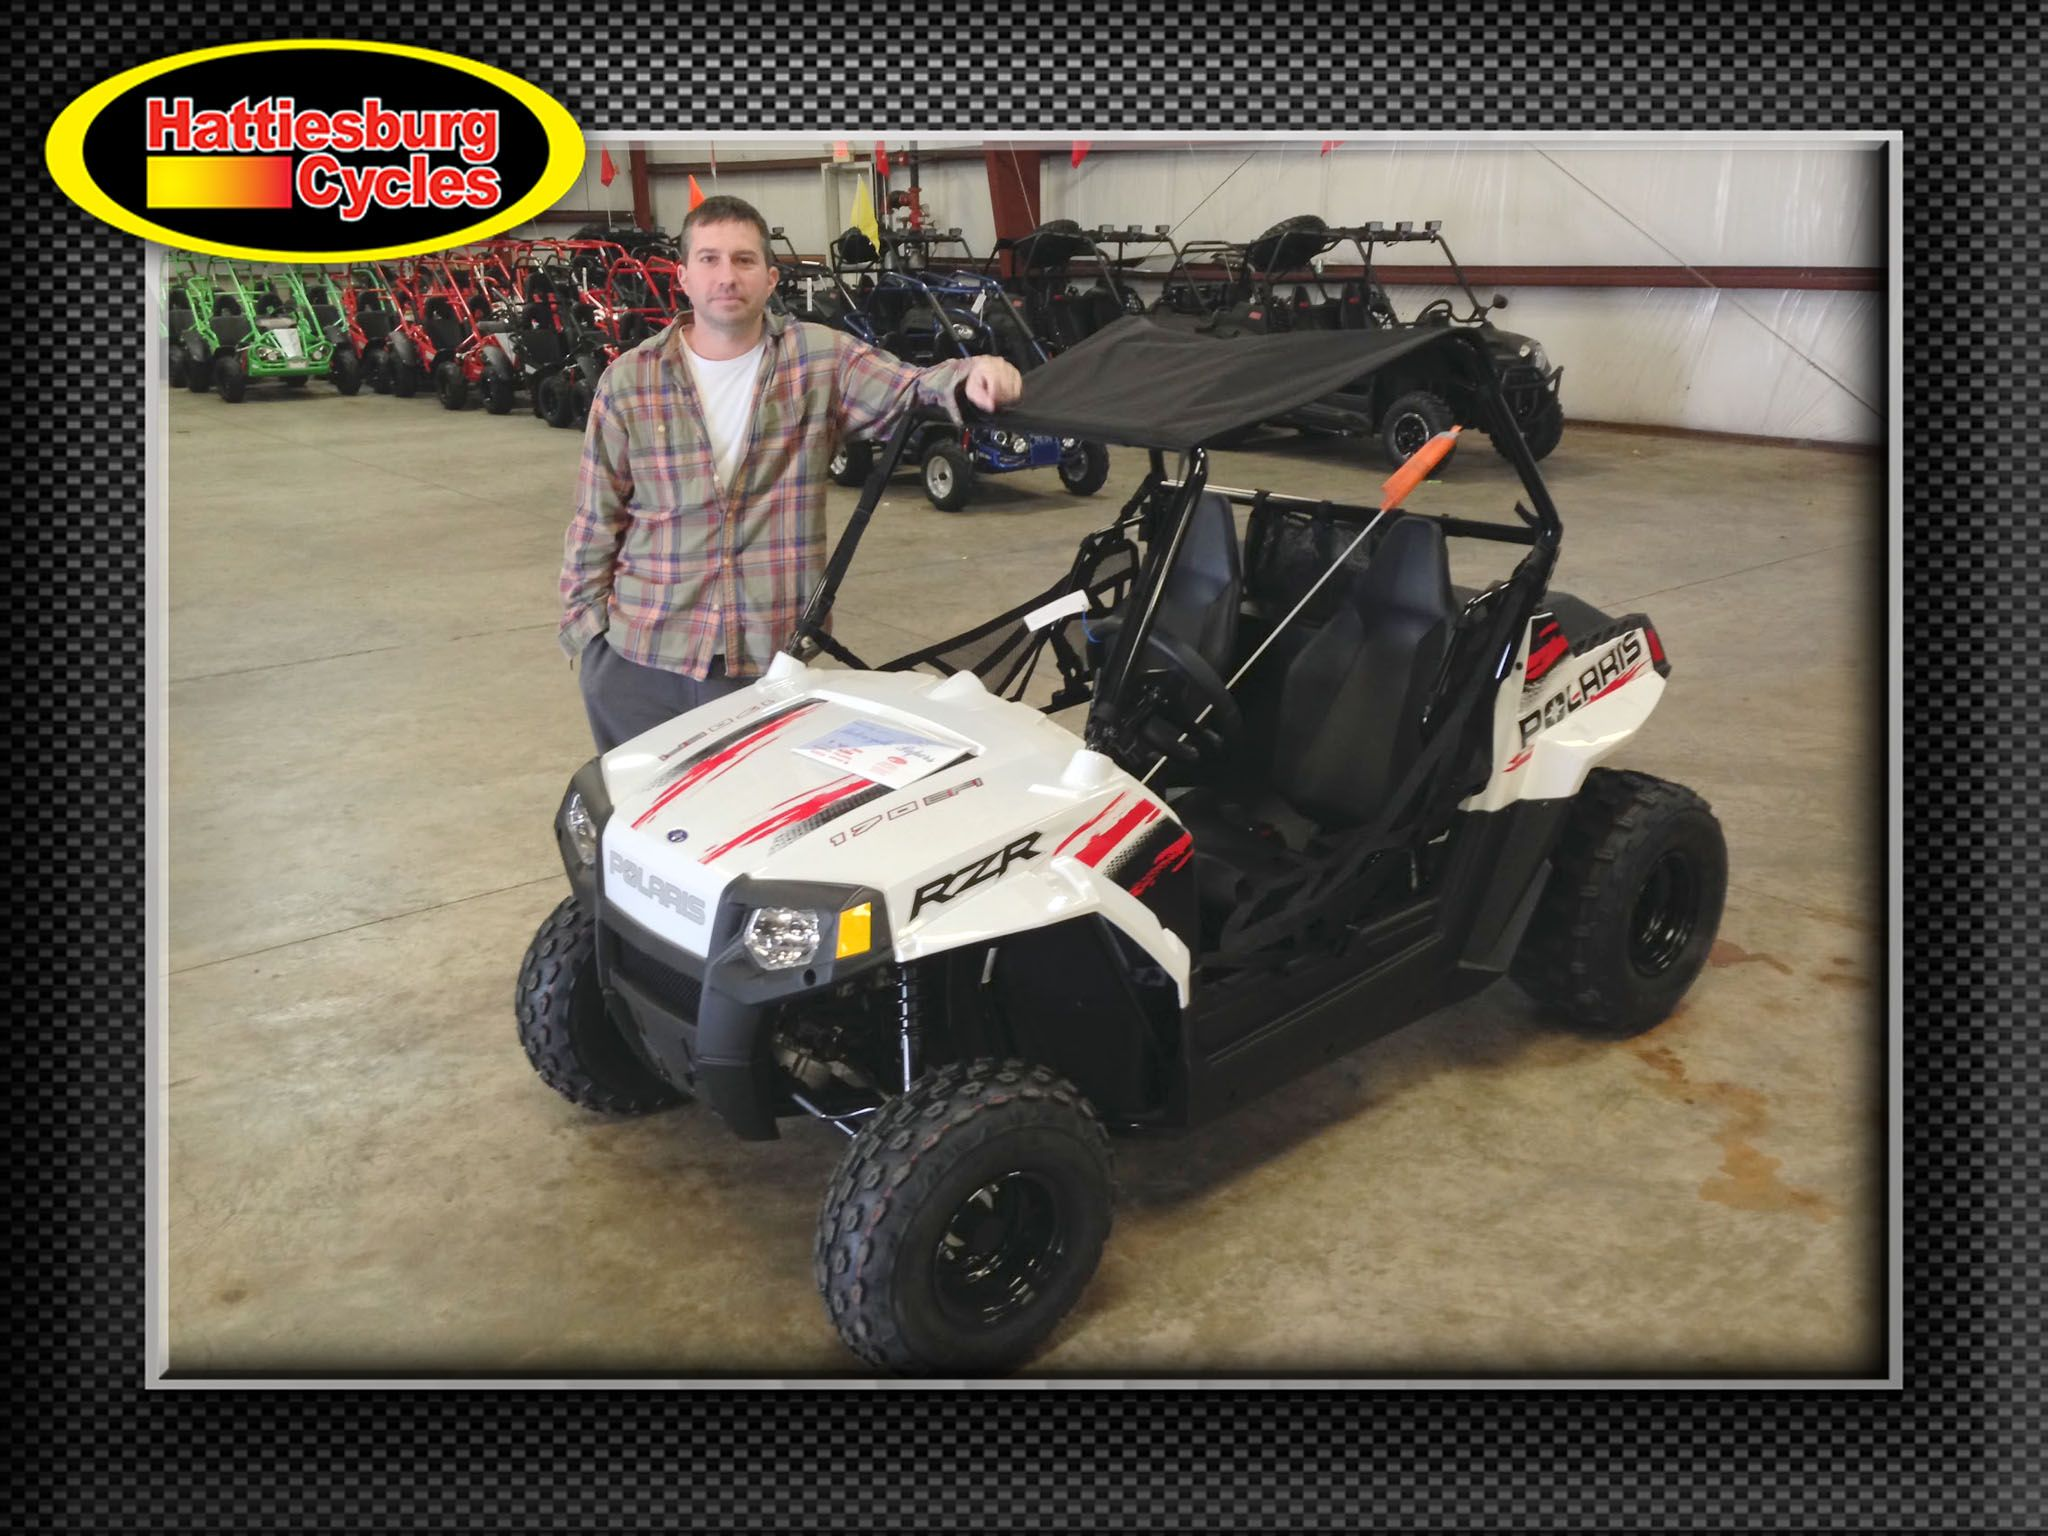 Thanks to Troy Hebert and Judy Loflin from Lumberton MS for getting a 2017 Polaris RZR 170. @HattiesburgCycles